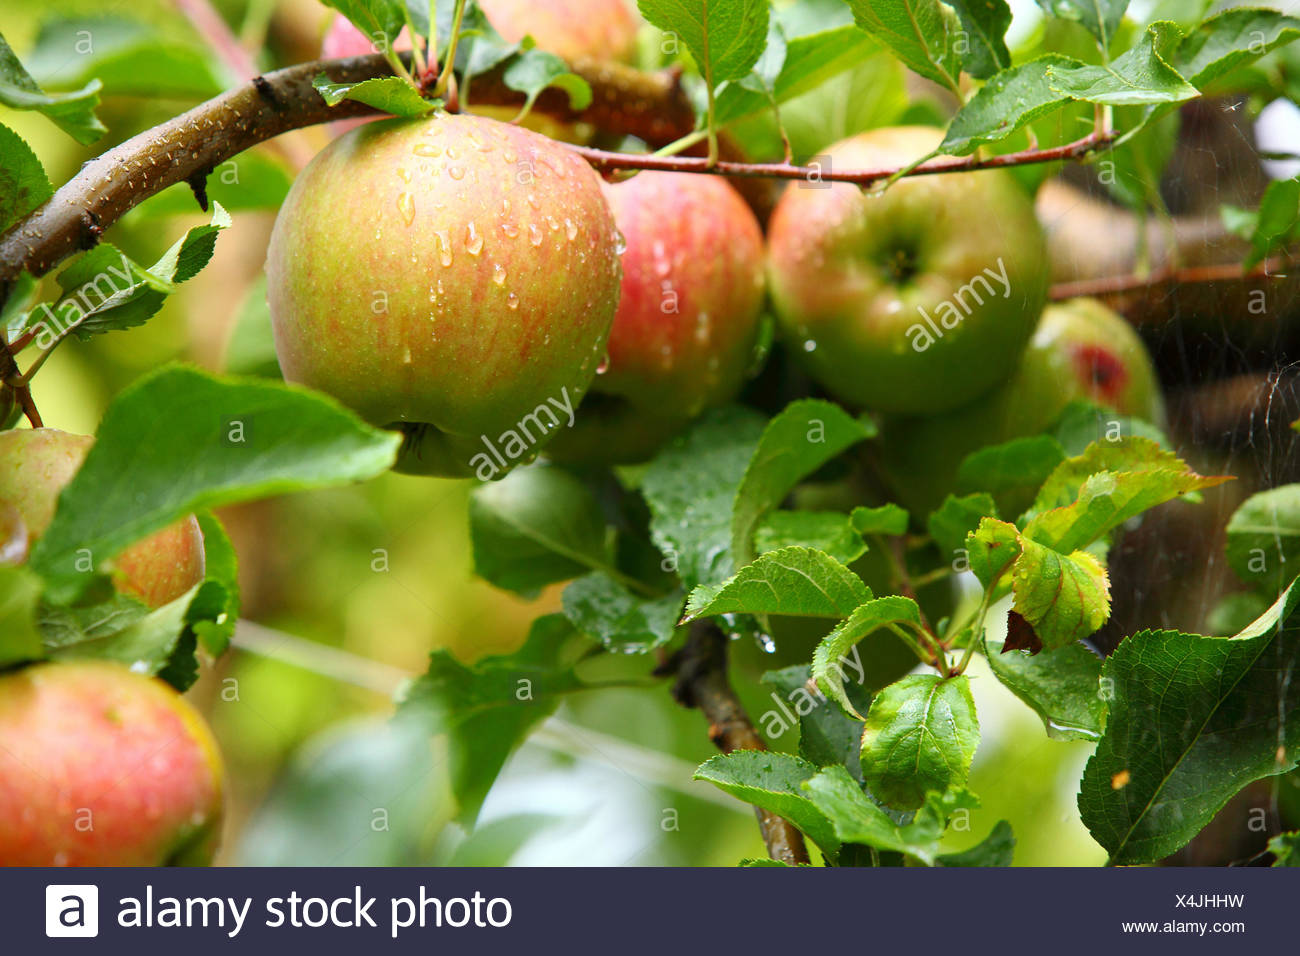 Ripe Beautiful Apples On The Branches Of Apple Trees Stock Photo Alamy